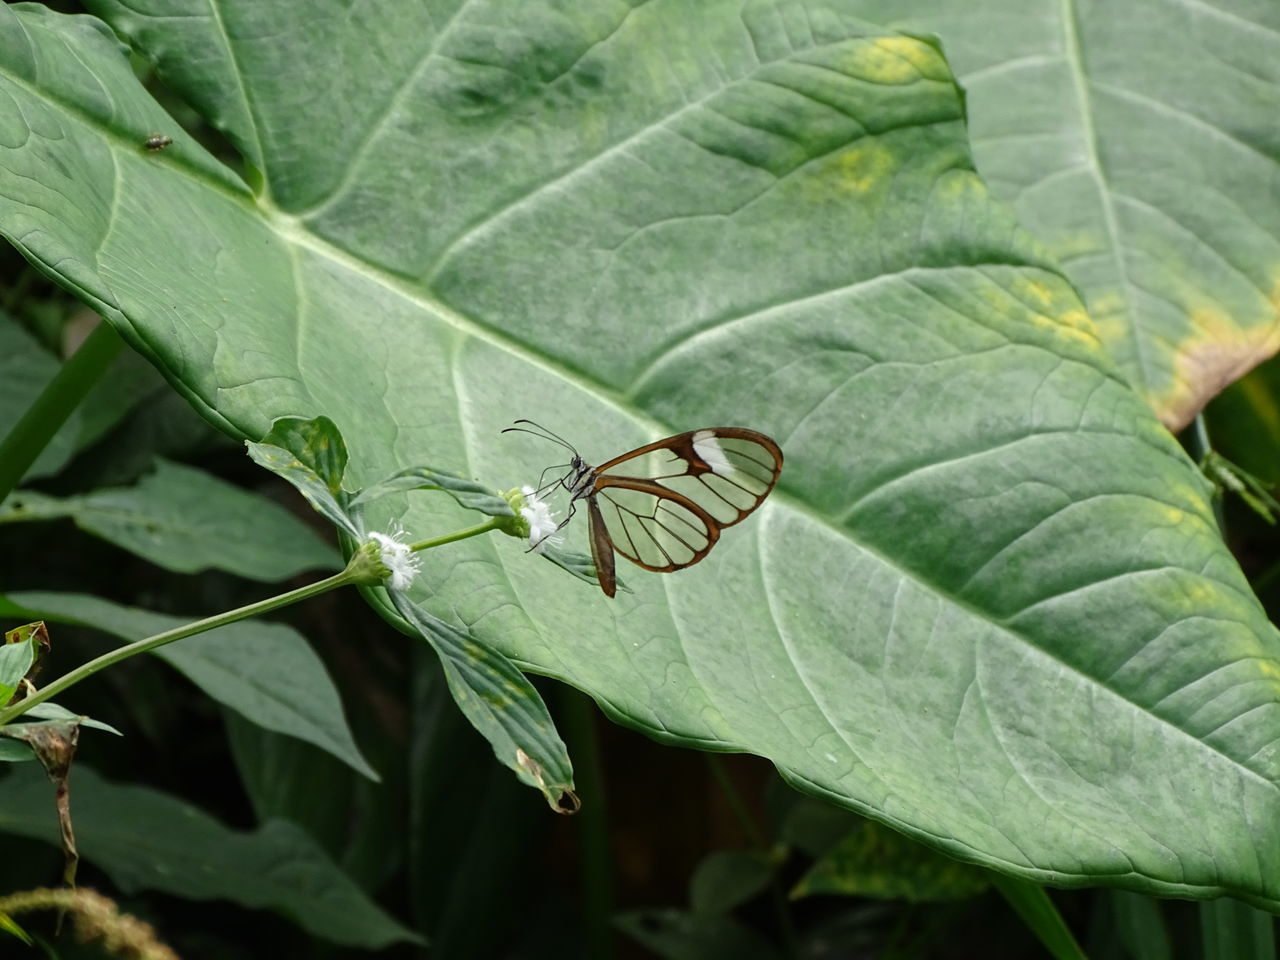 TRansparanet butterfly Animals In The Wild Beauty In Nature Butterfly Close-up Colombia EyeEm New Here Jungle Leaf No People Santa Marta, Colombia Transparent Transparent Butterfly Transparent Wings